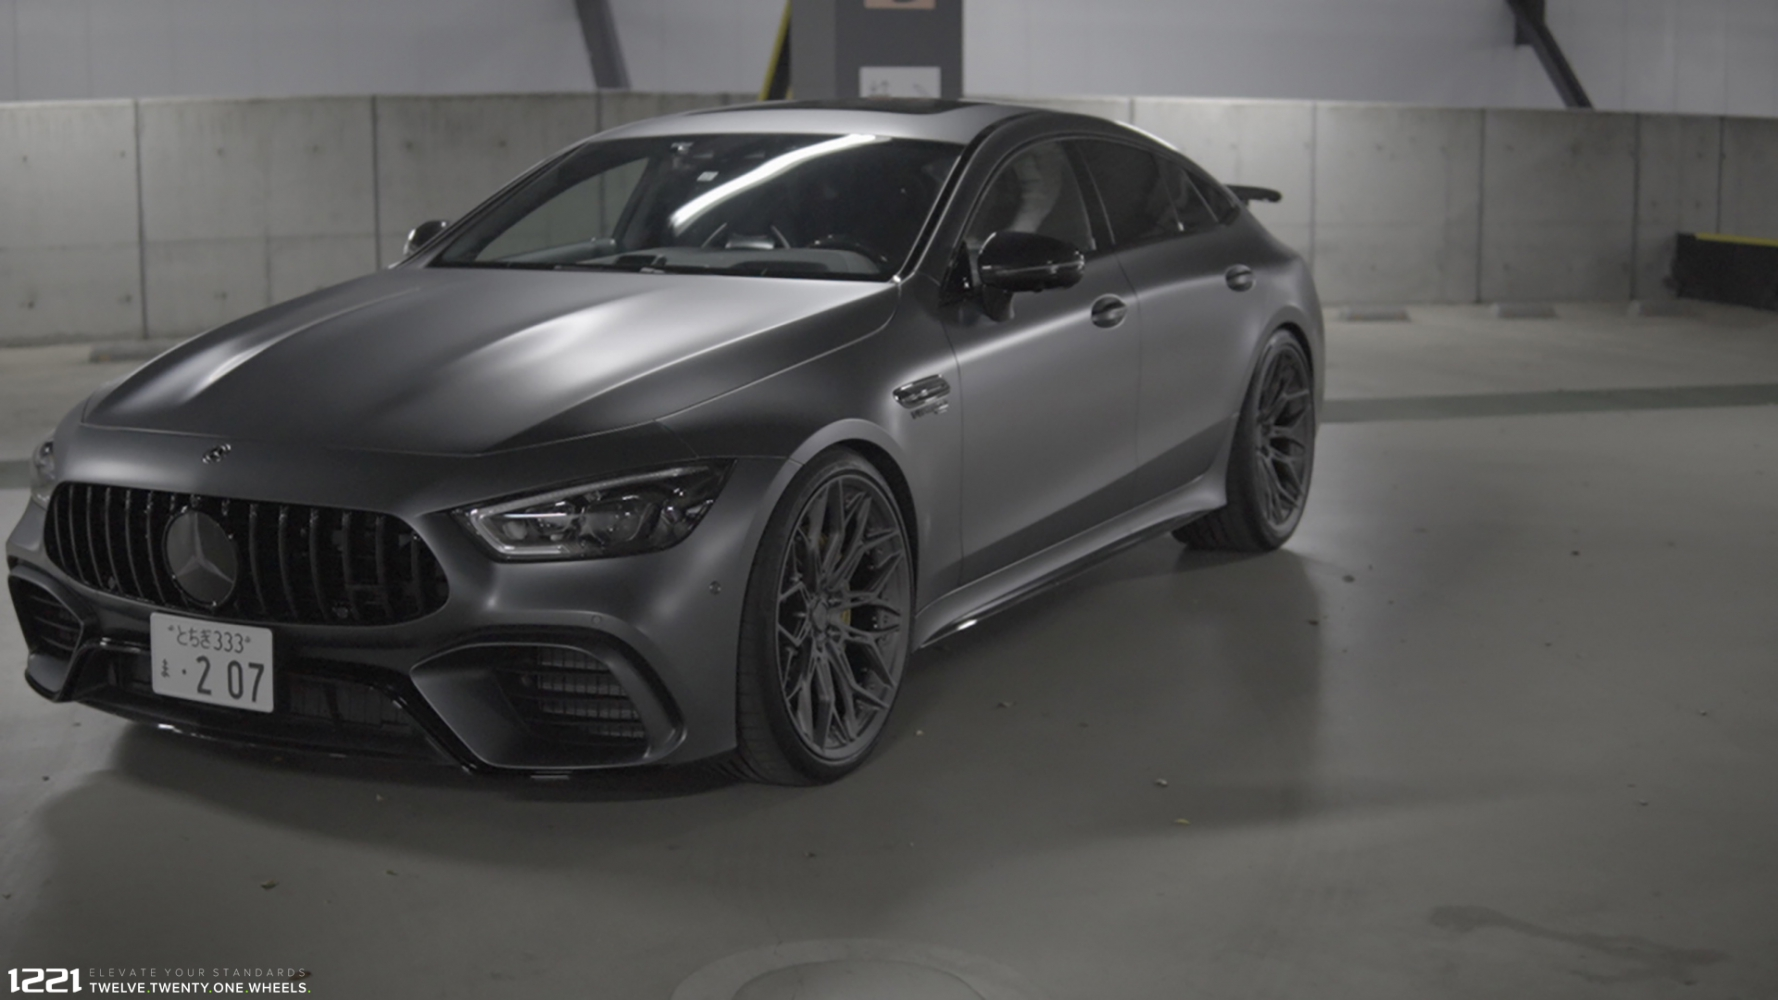 Mercedes Benz GT63s AMG Forged Wheels